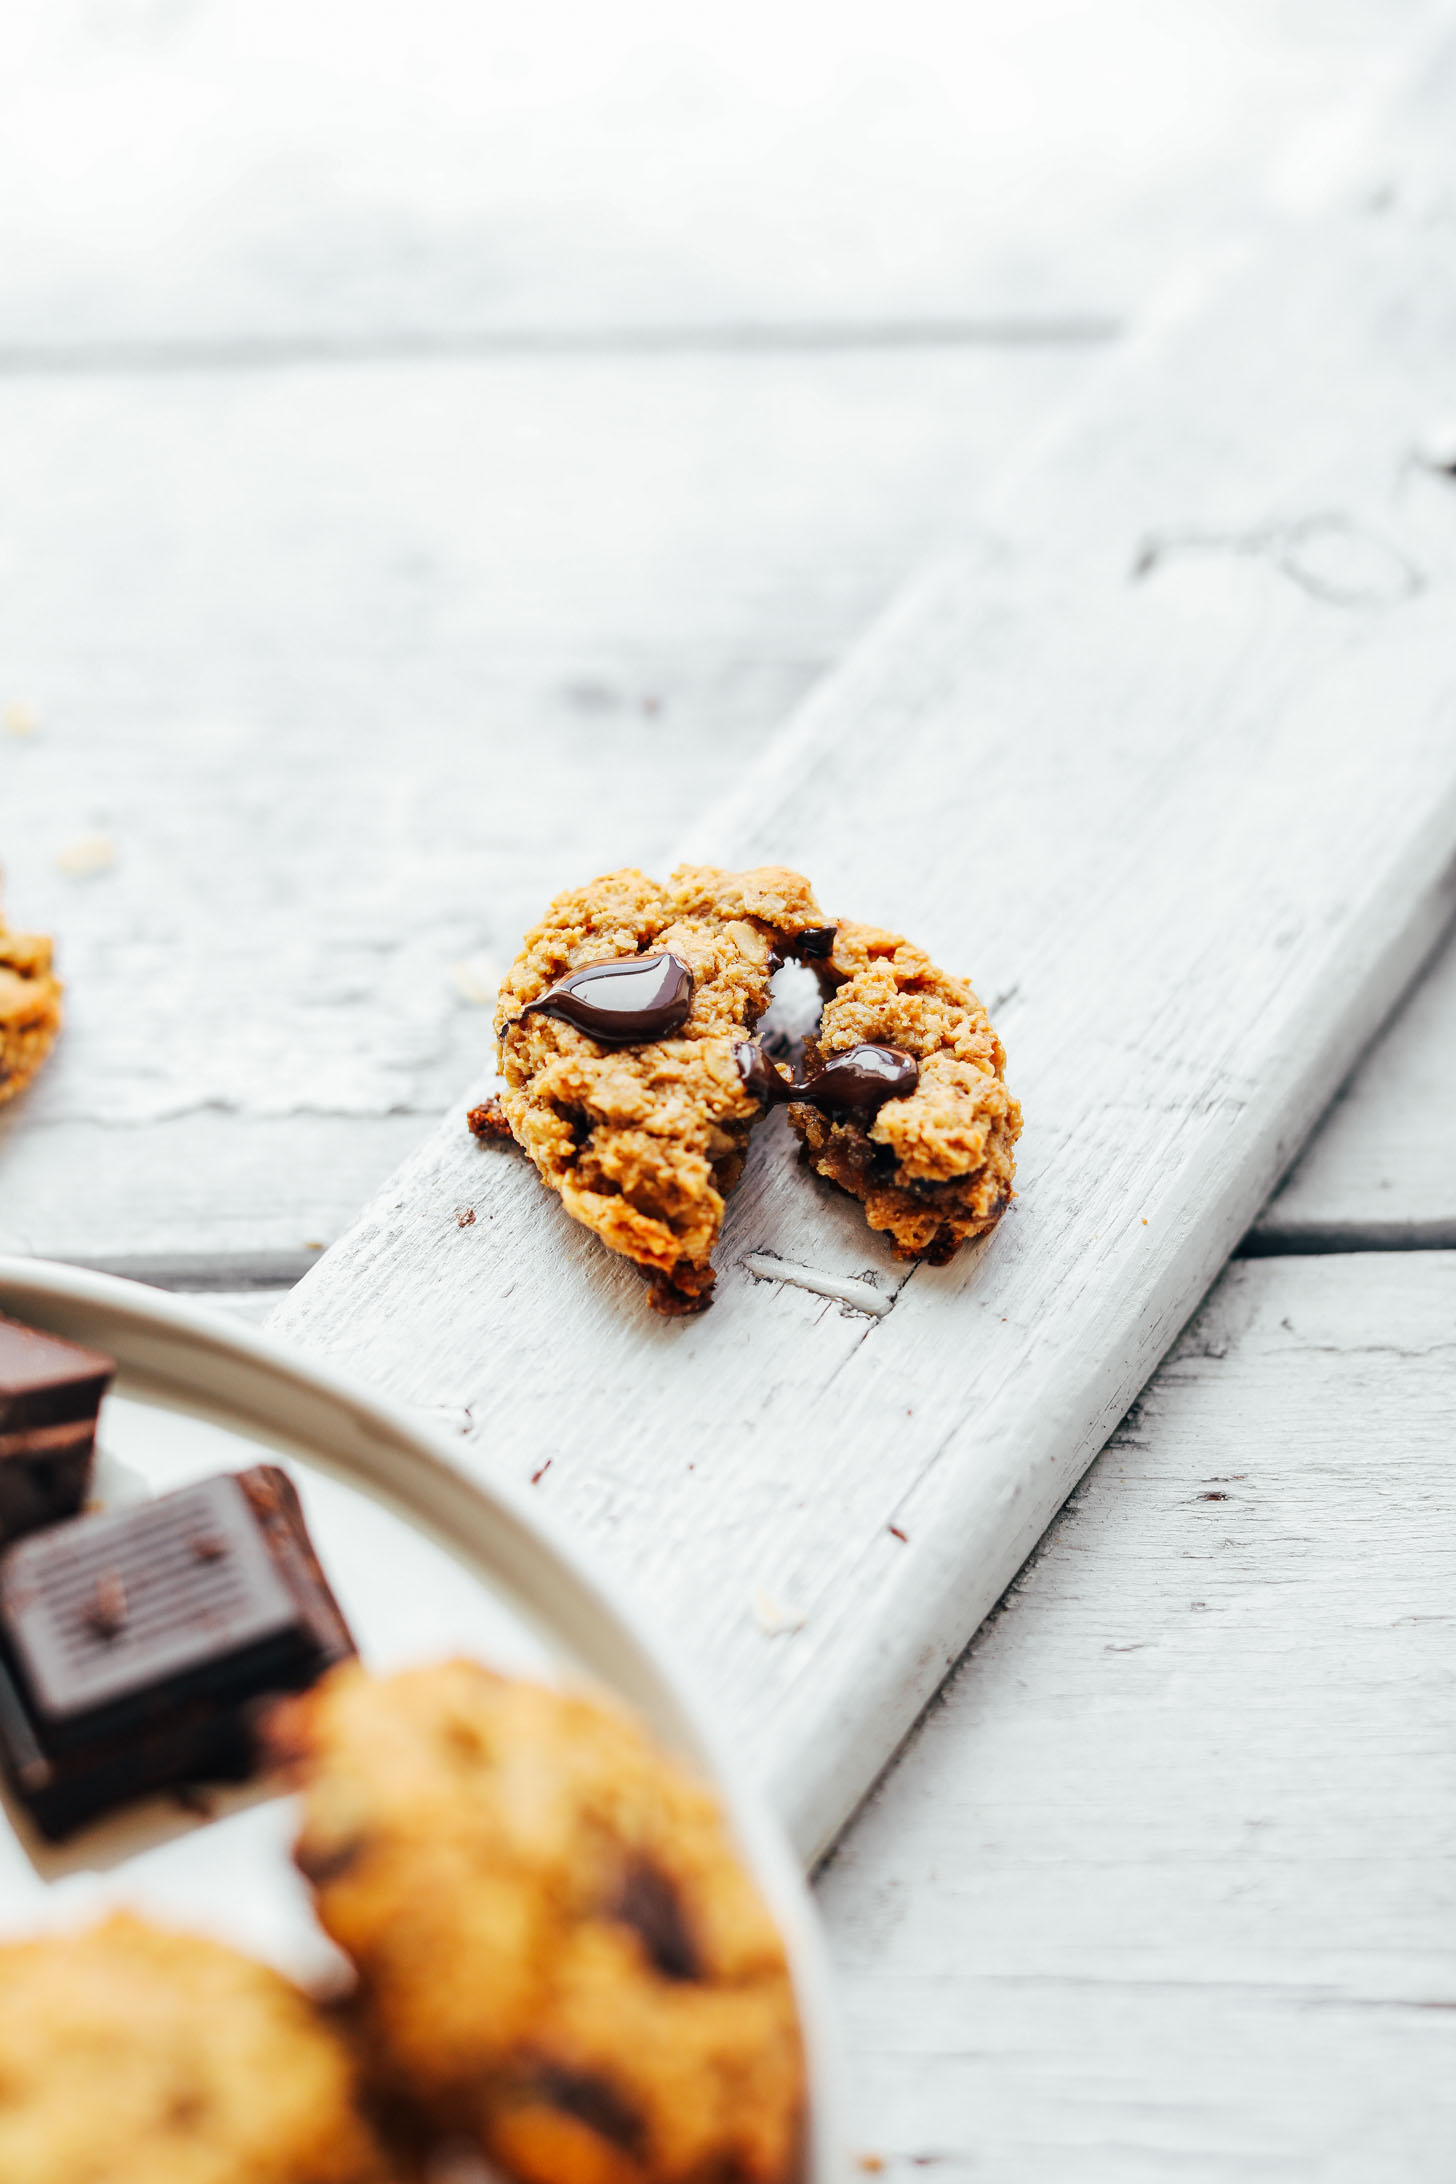 Breaking apart a warm Gluten-Free Oatmeal Chocolate Chip Cookie